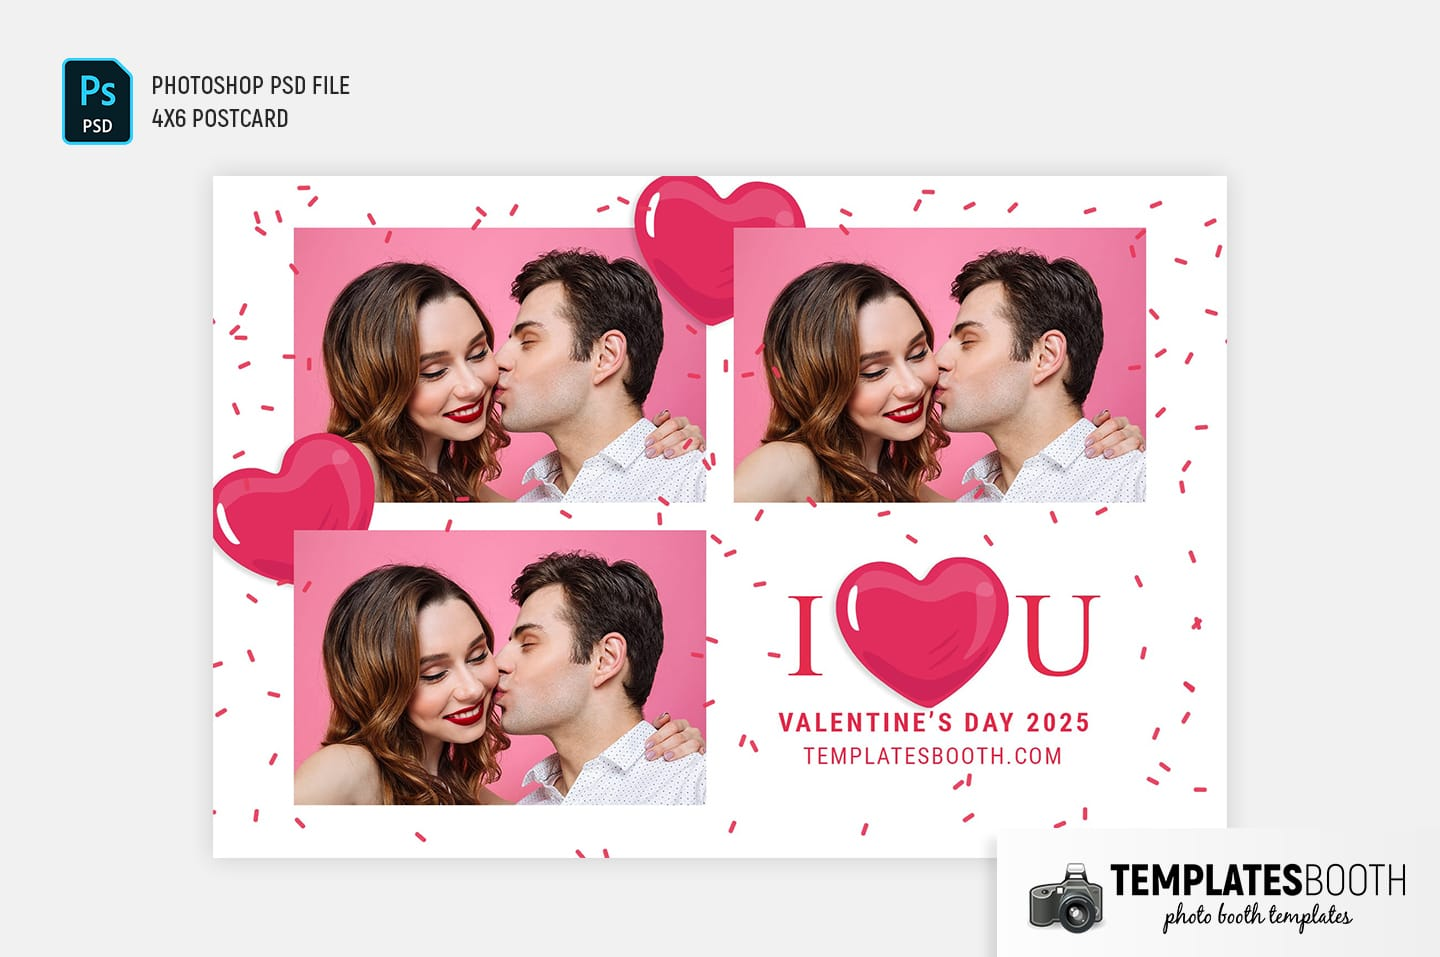 I Love You Valentine's Day Photo Booth Template (4x6 postcard)